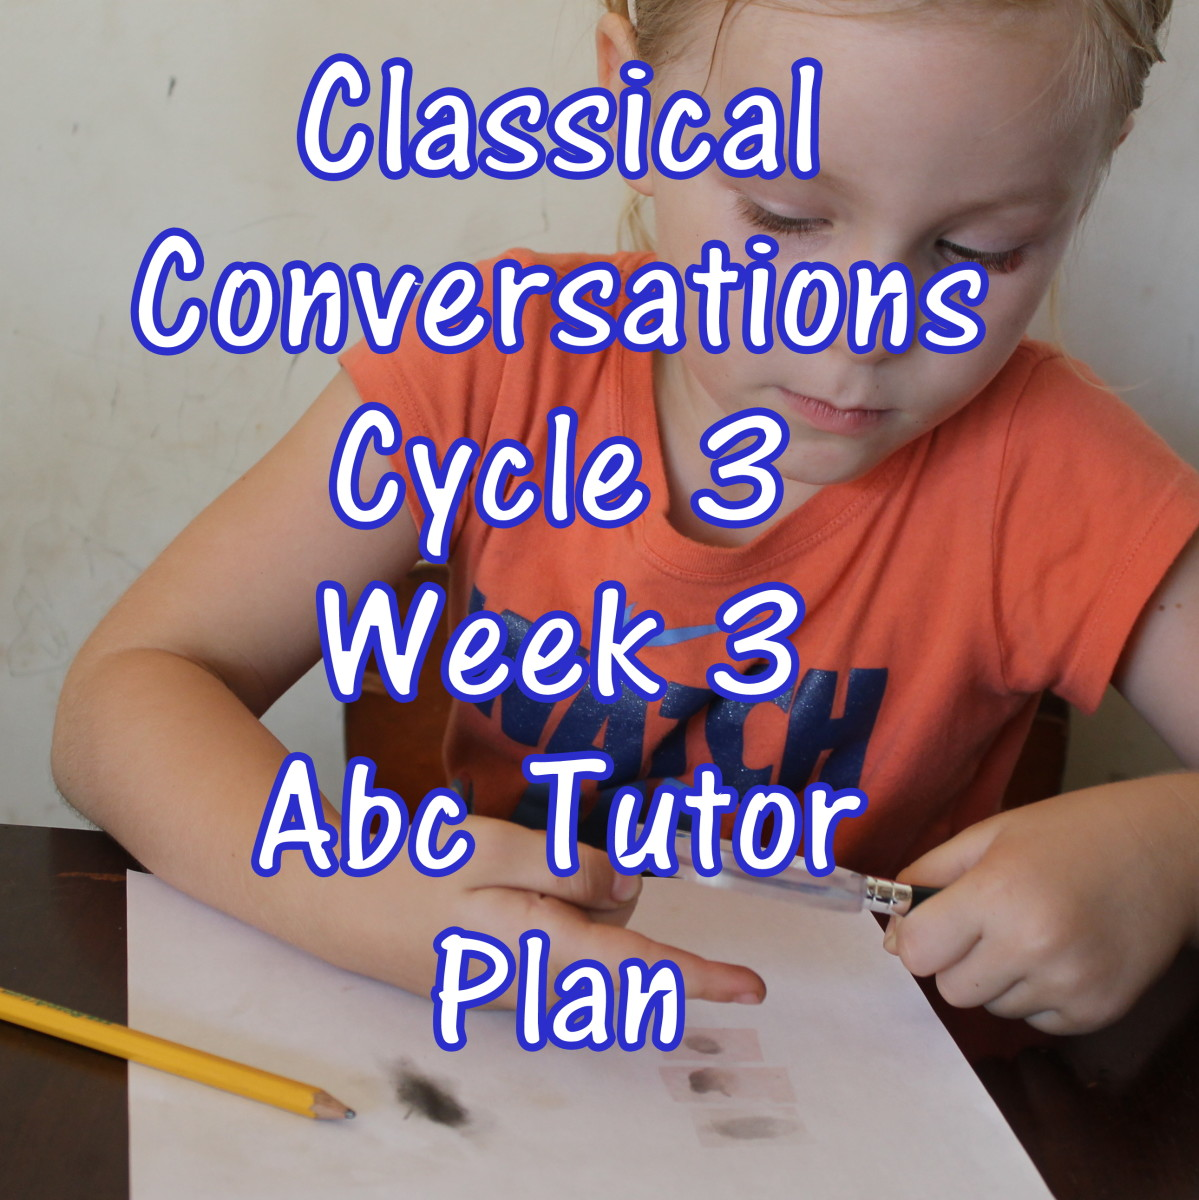 CC Cycle 3 Week 3 Lesson for Abecedarian Tutors